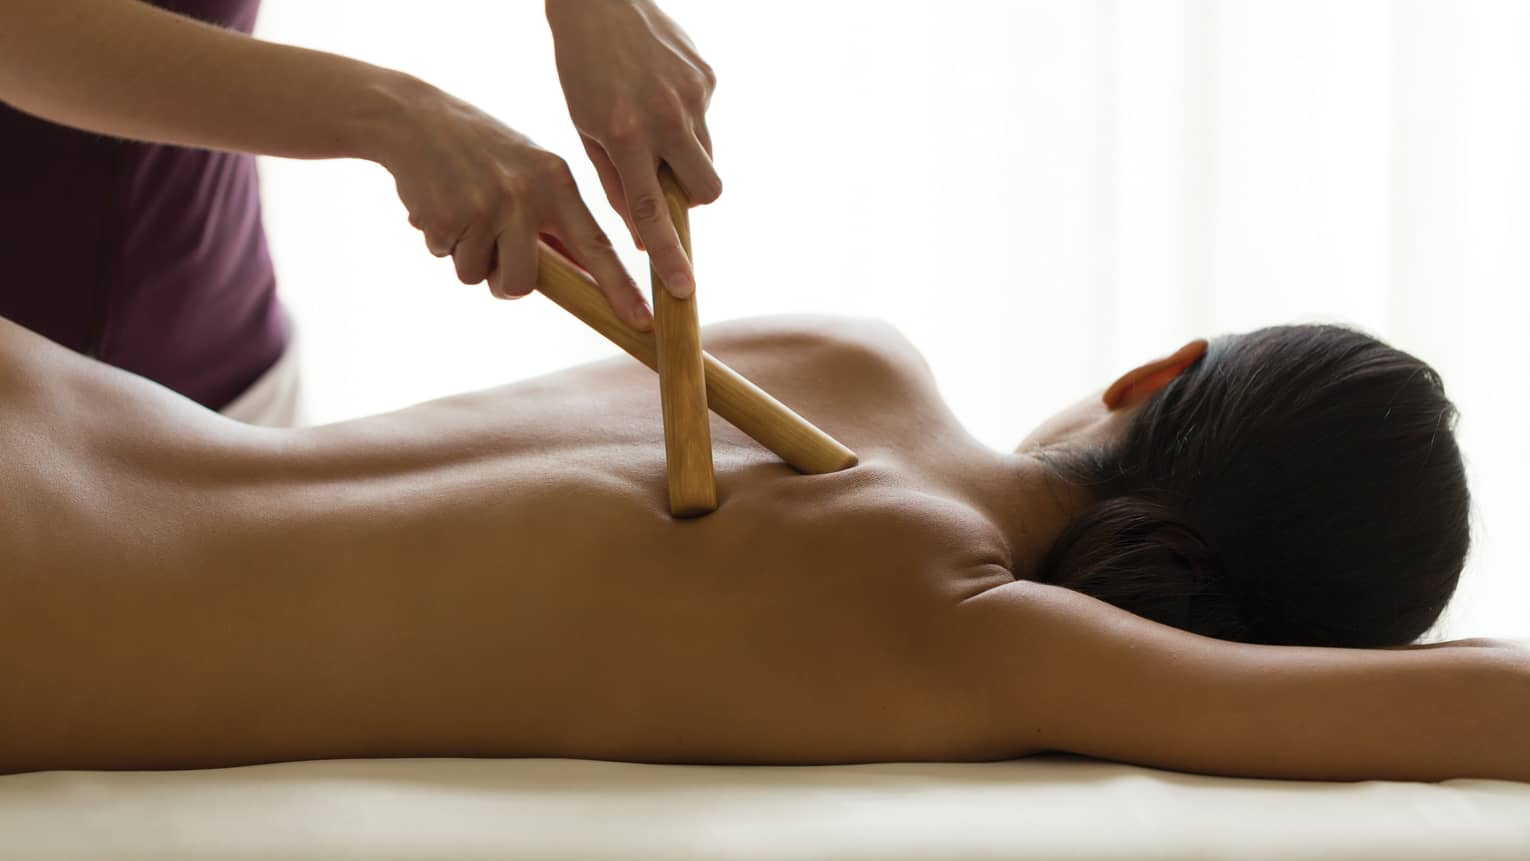 Masseuse presses two birchwood massage sticks into woman's bare back in spa